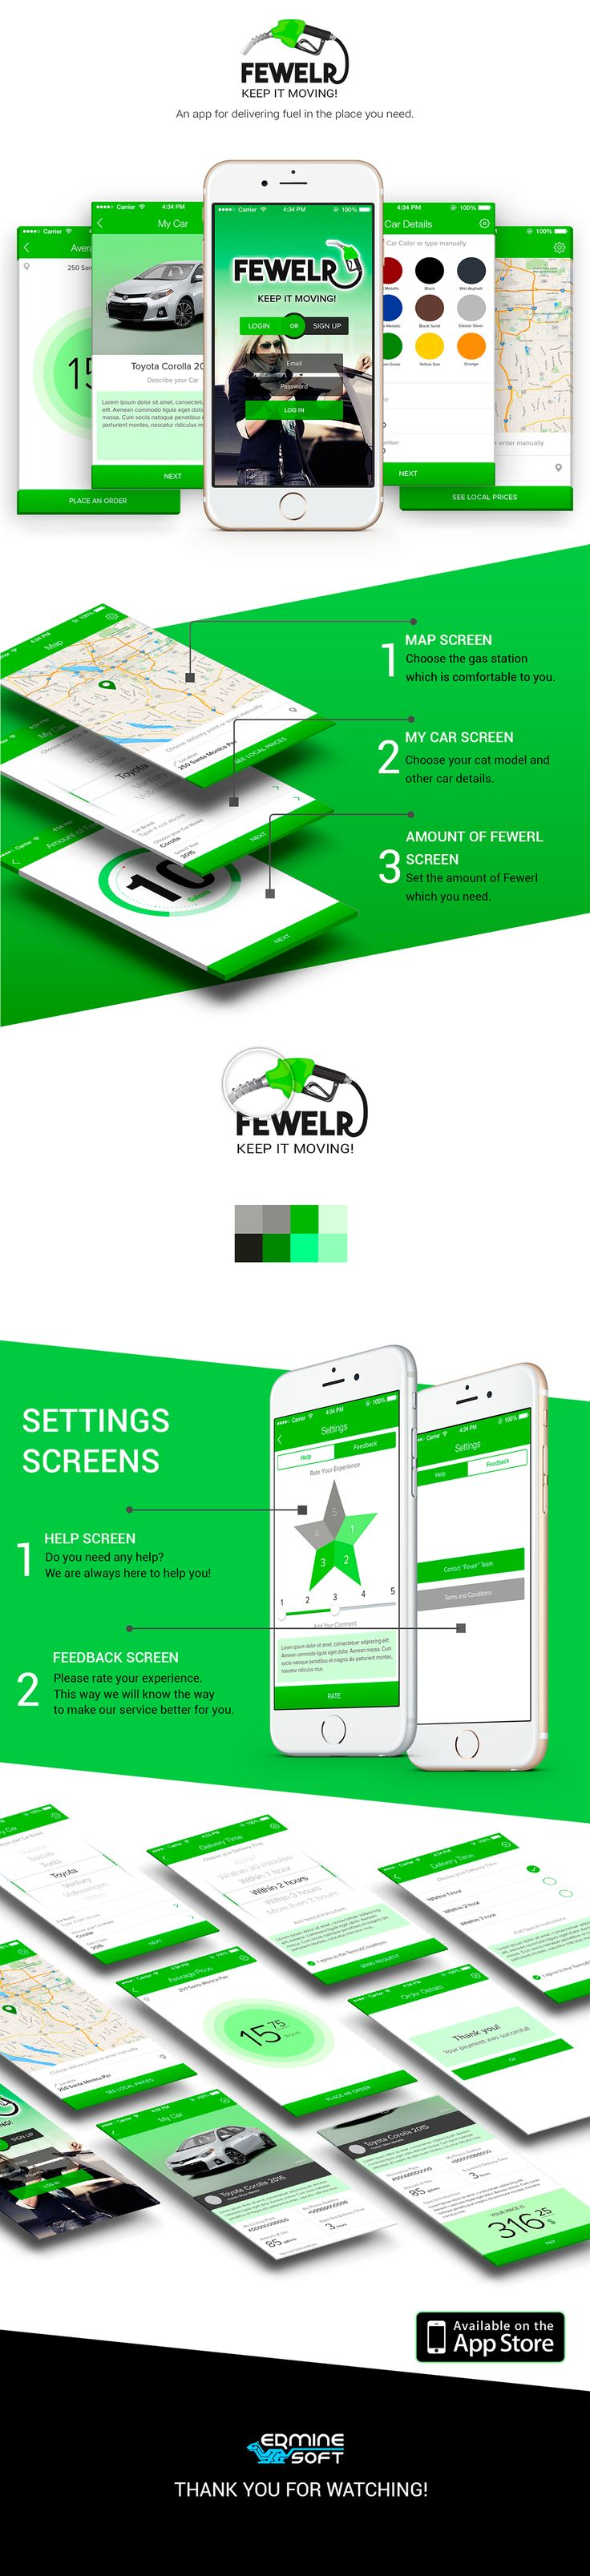 FEWELR App.This is an IOS platform app that provides fuel delivery service. Your car is out of fuel and there is no gas station nearby to fill it? The Fewelr will help you. You can choose the place and time of delivery, average price and the amount you need. http://erminesoft.com/